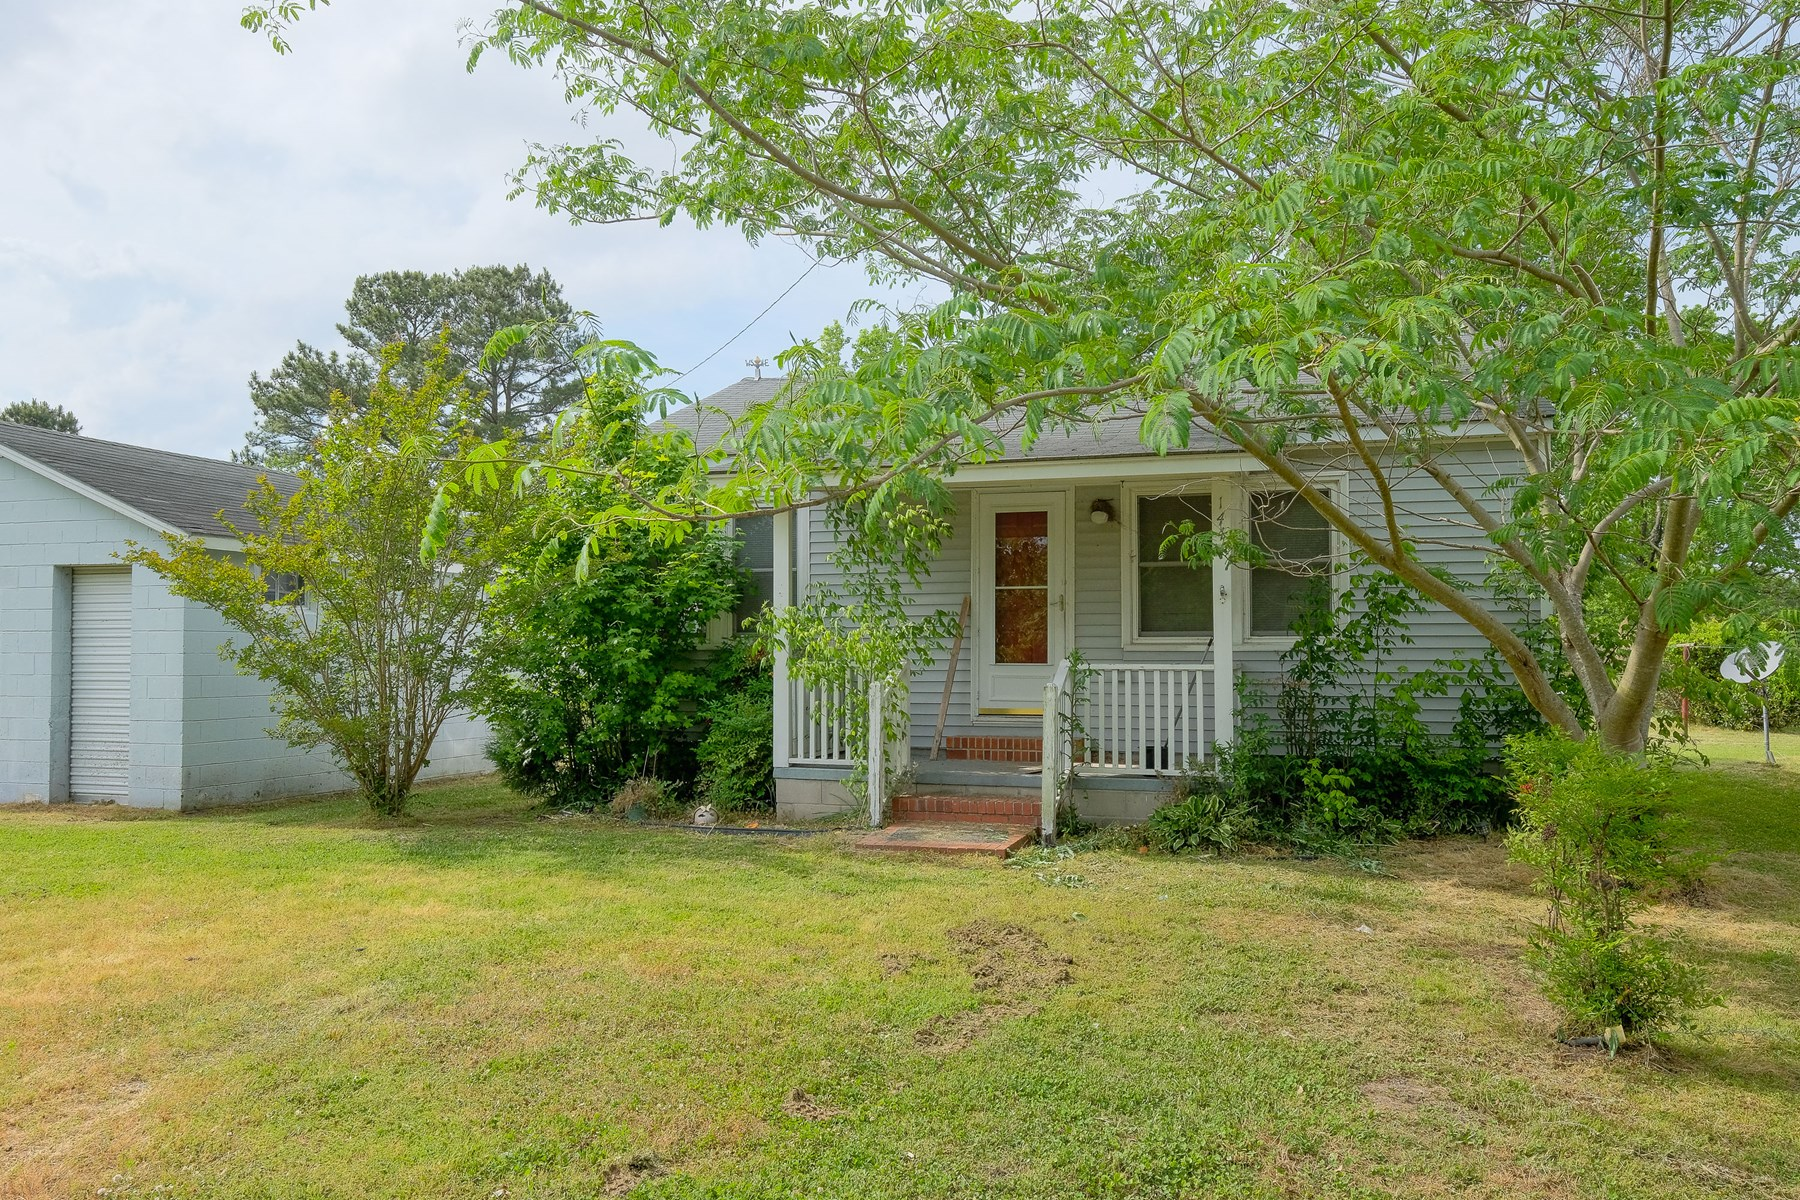 144 MEXICO RD EDENTON, NC-2 BEDROOM 1 BATH HOME WITH 4 UNIT STORAGE BUILDING